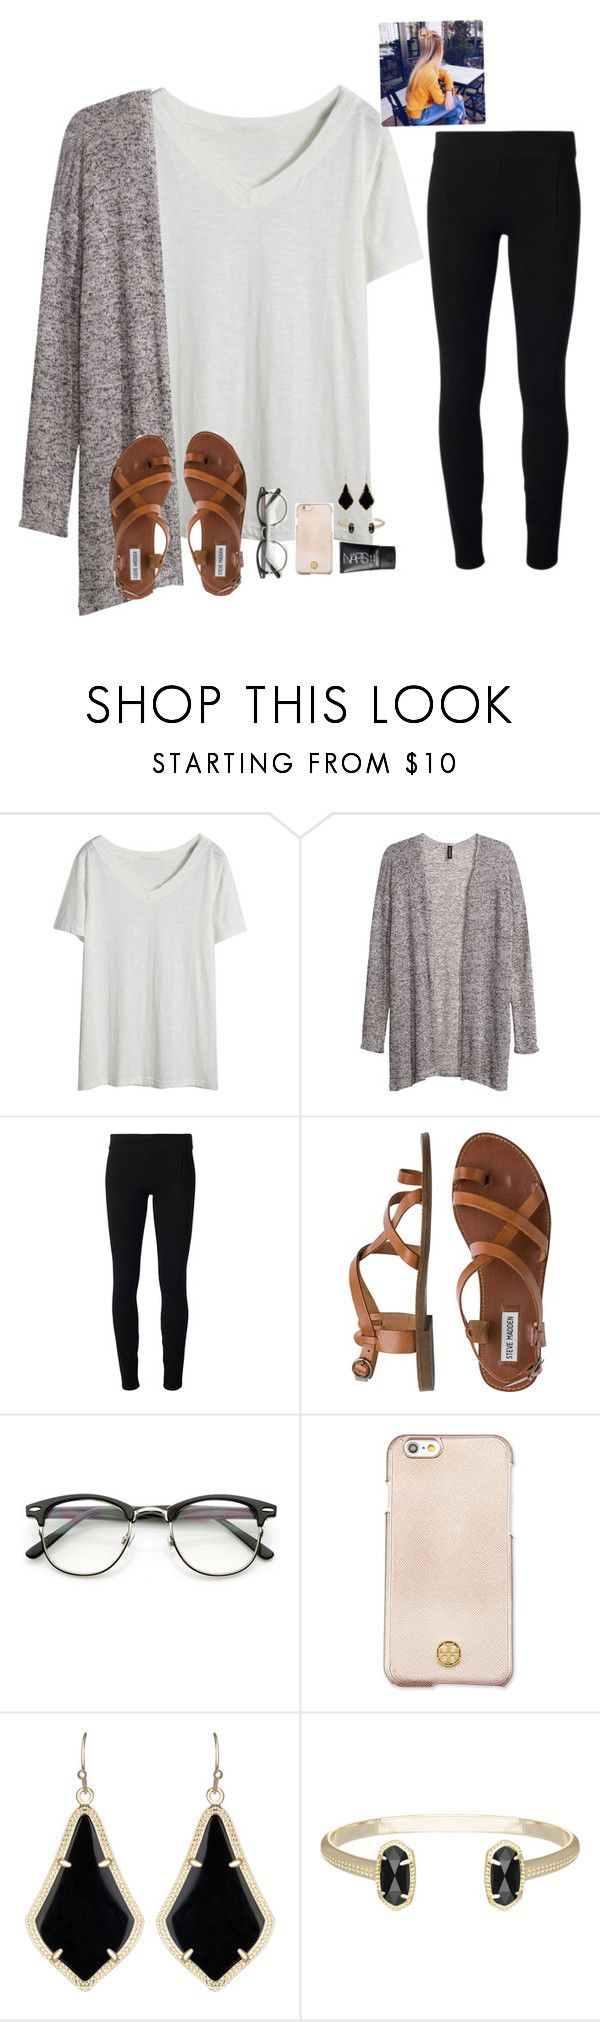 """""""Good morning loves """" by raquate1232 ❤ liked on Polyvore featuring H&M, Helmut by Helmut Lang, Steve Madden, ZeroUV, Tory Burch, Kendra Scott and NARS Cosmetics"""